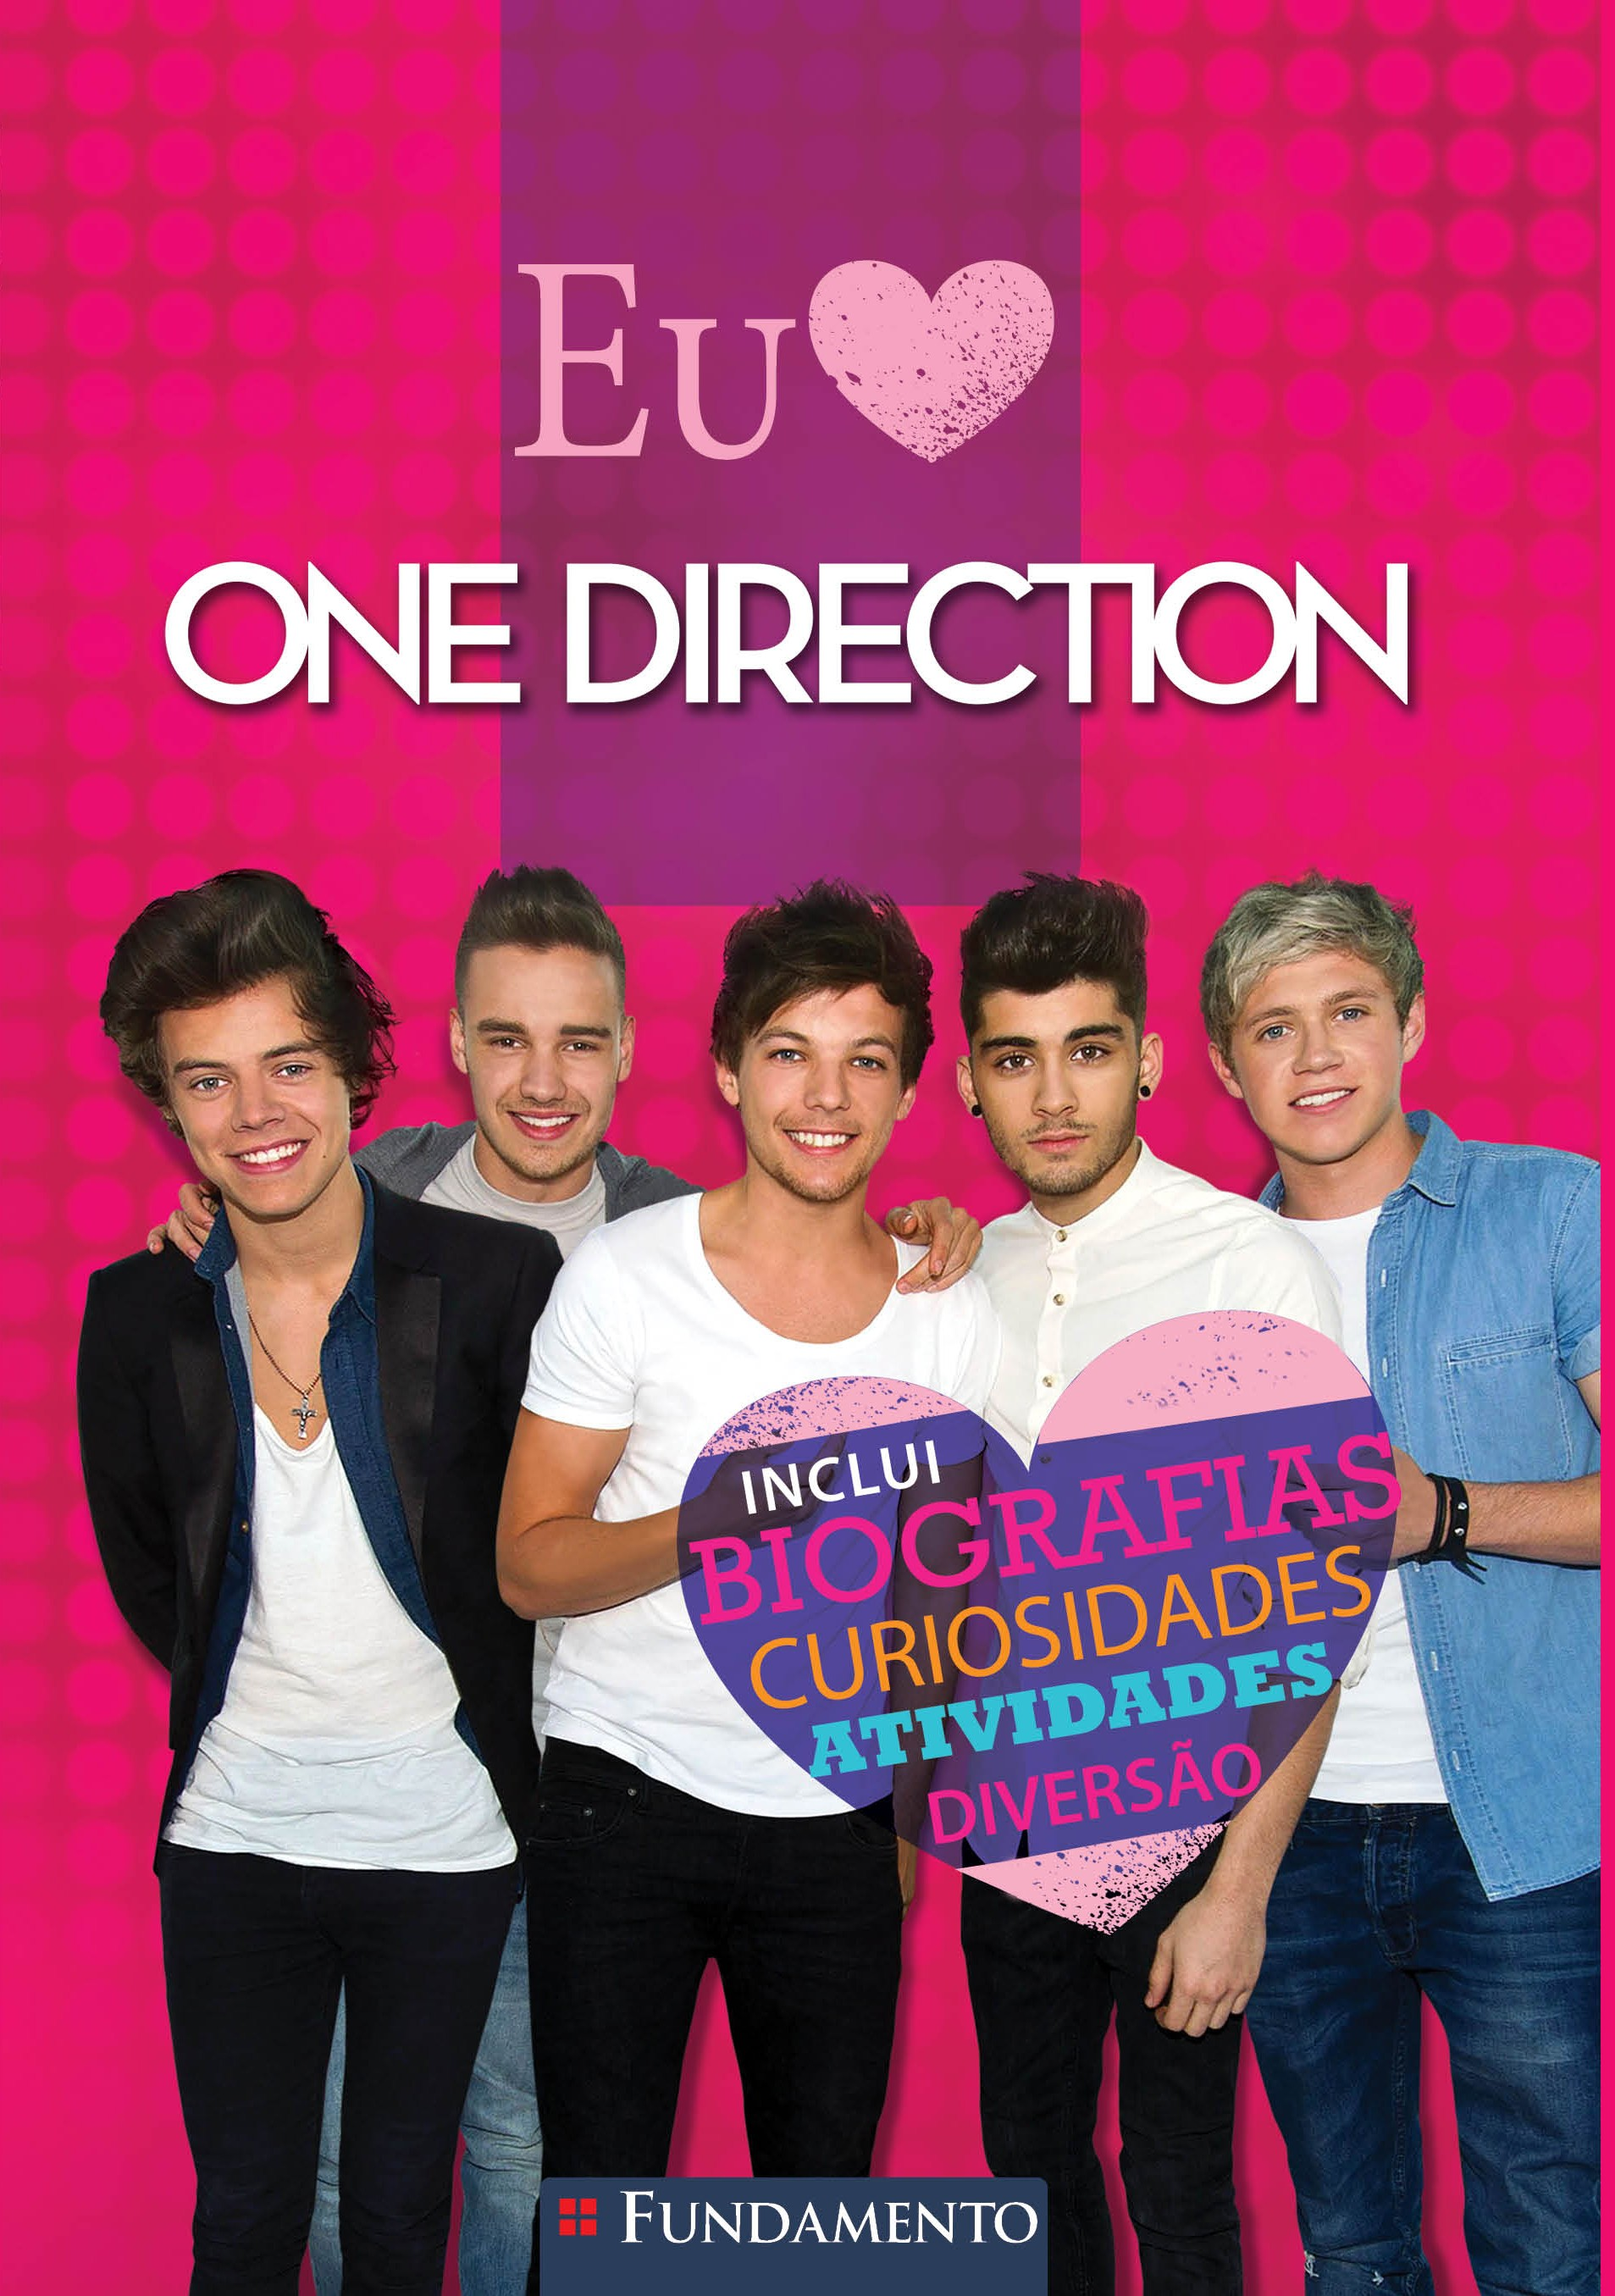 Eu amo One Direction